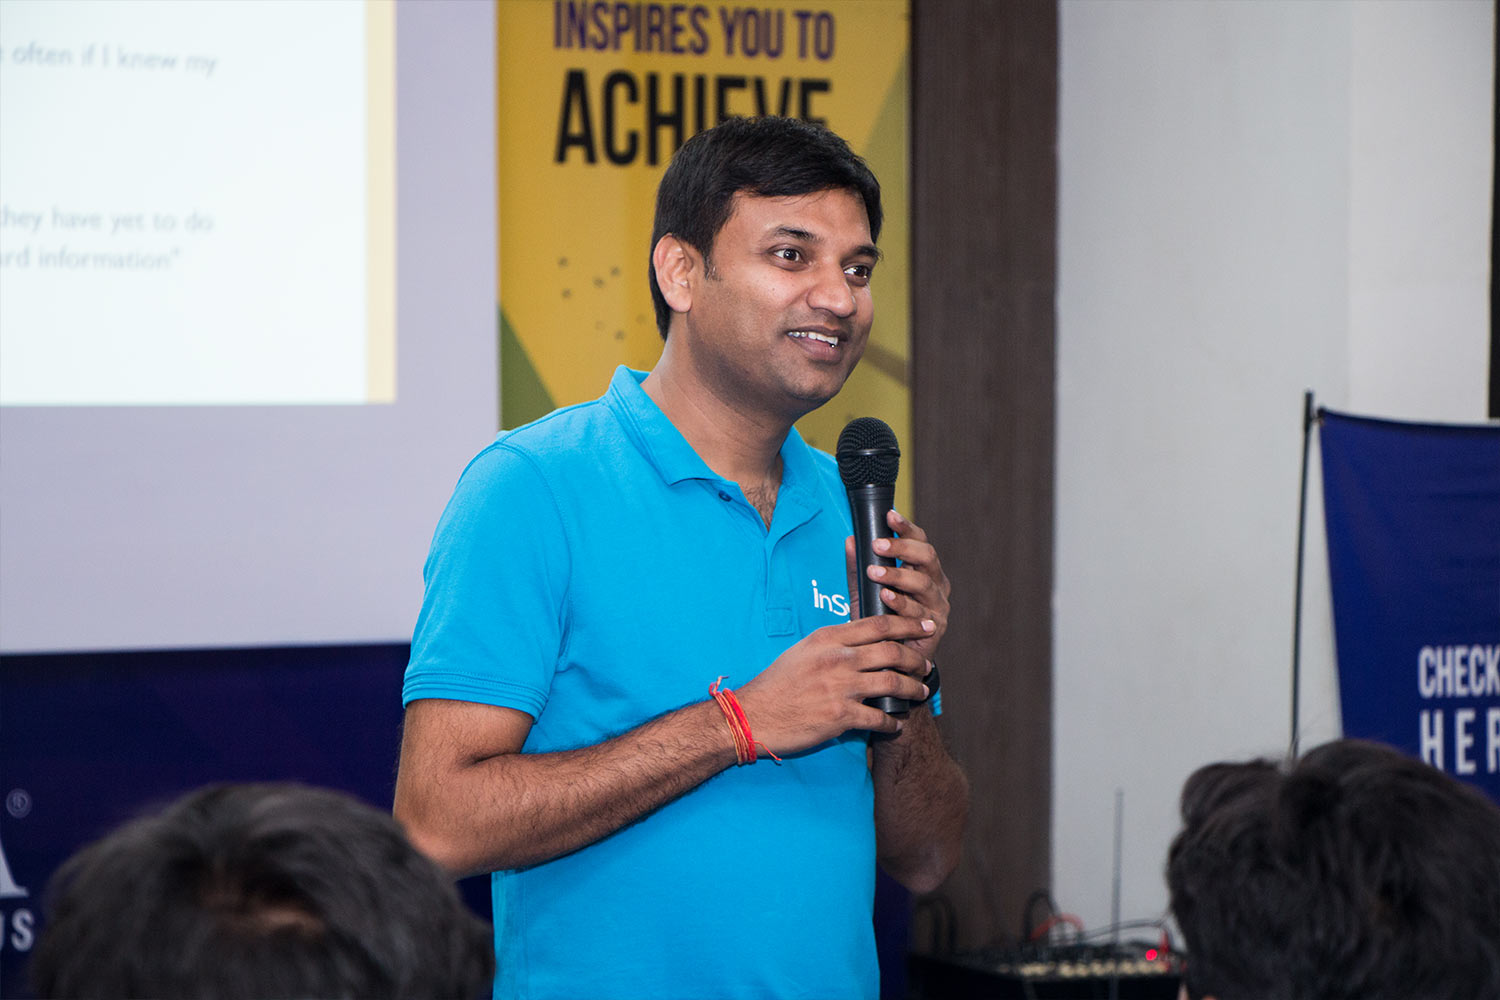 atul-gupta-in-inspiria-college